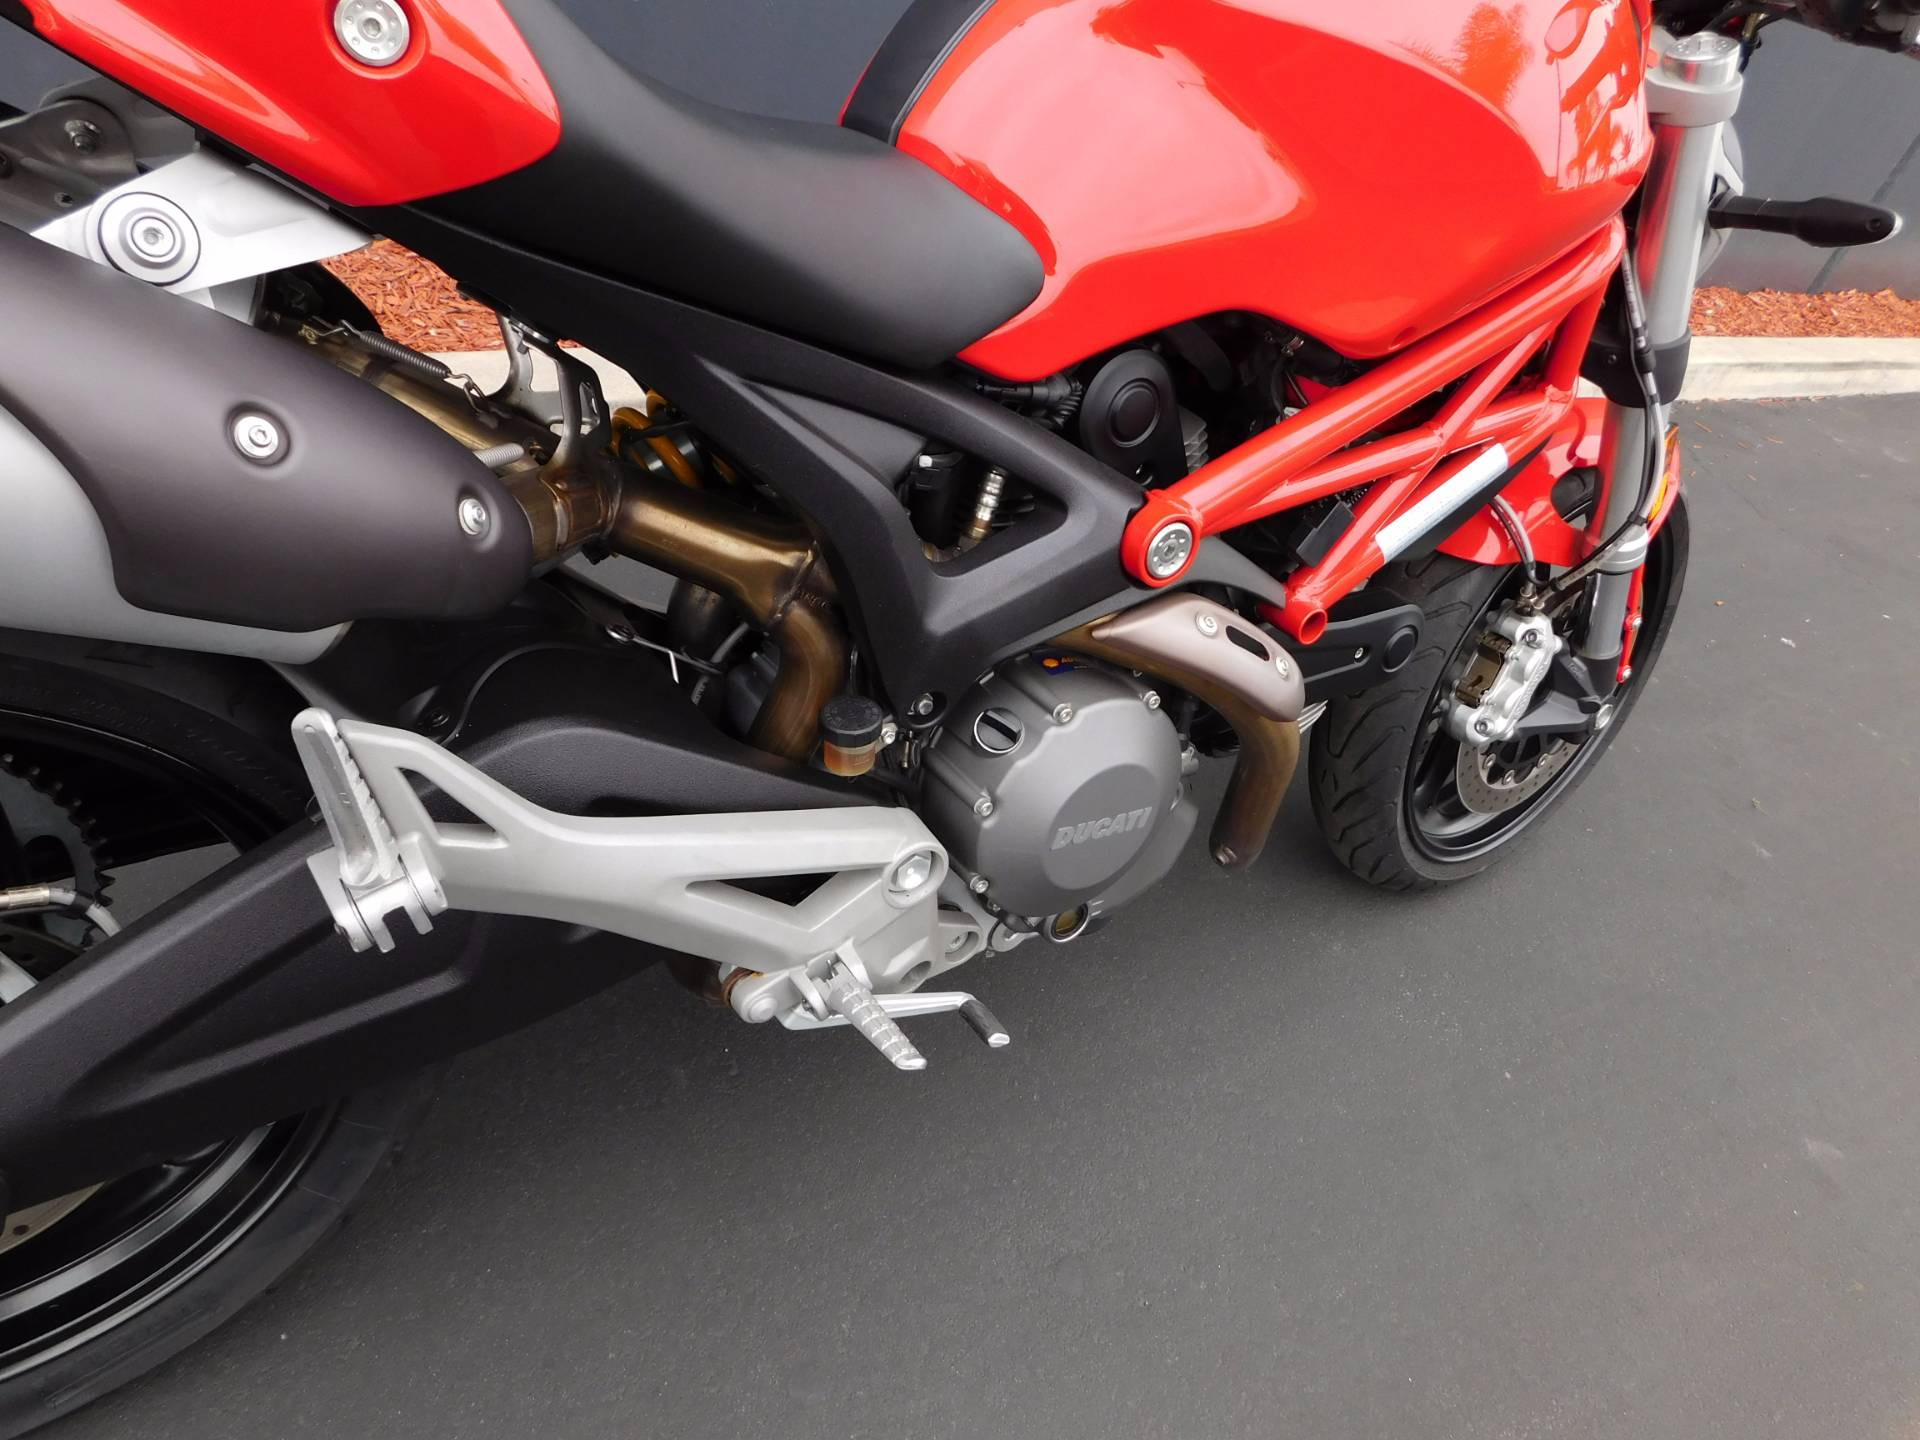 2010 Ducati Monster 696 in Chula Vista, California